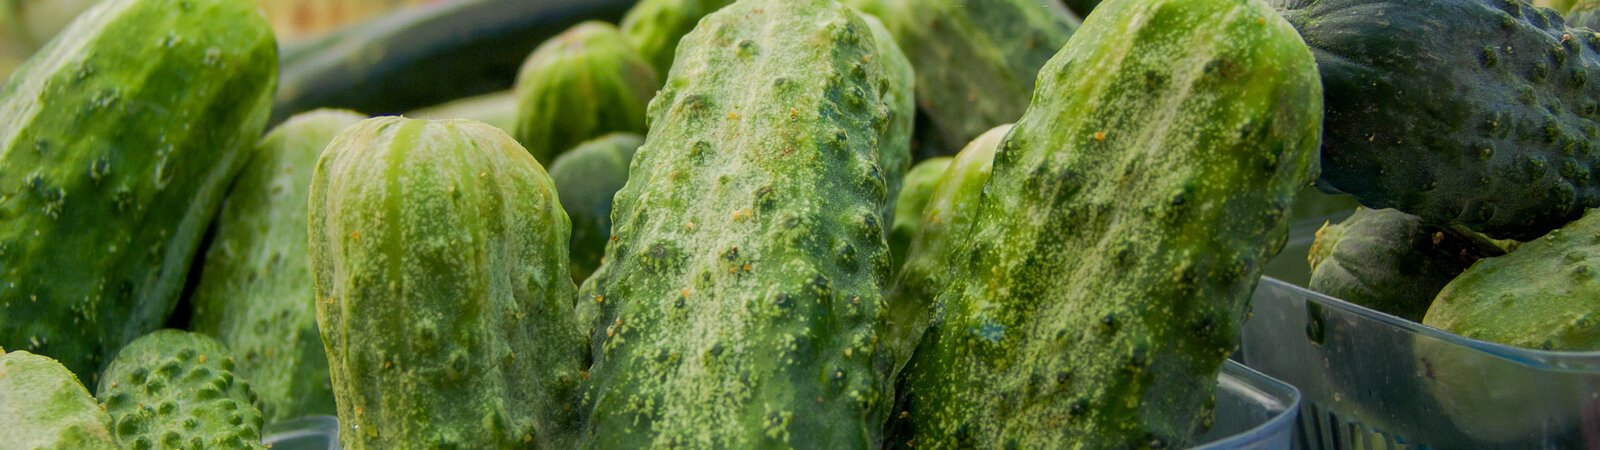 Fresh, locally grown cucumbers at the 2020 YLNI Farmers Market in Fort Wayne.